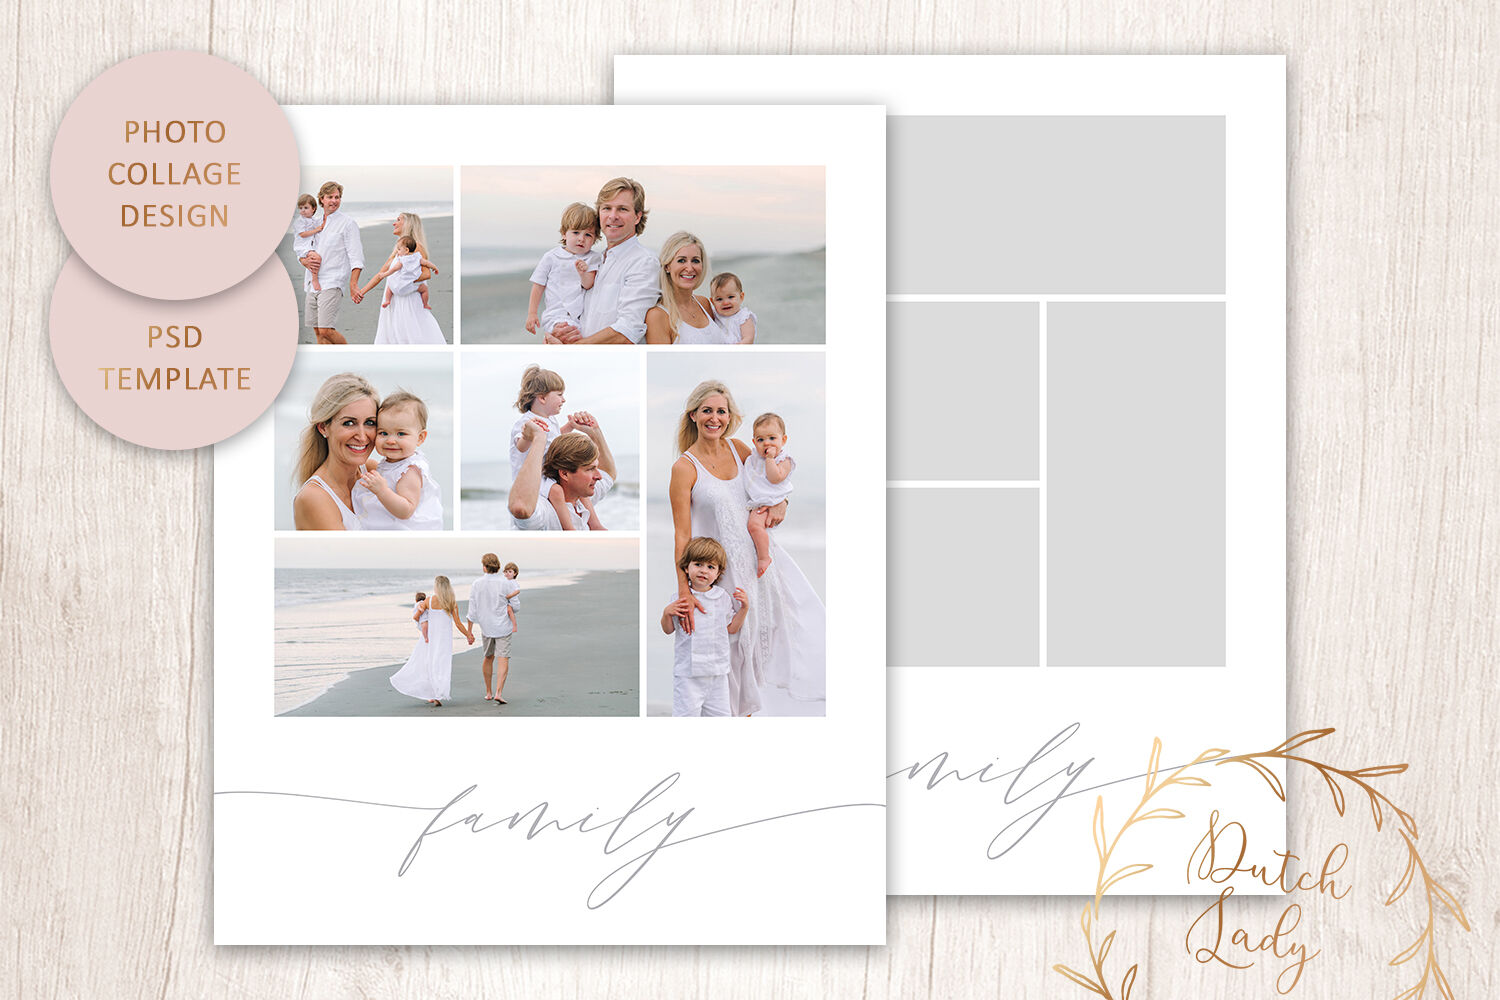 Psd Photo Collage Template 7 By The Dutch Lady Designs